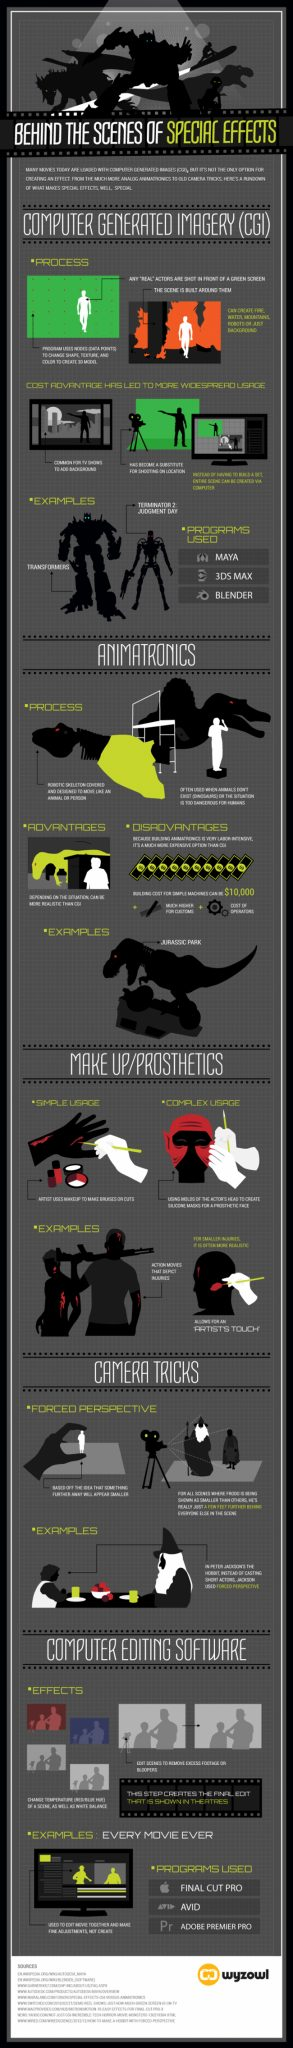 Behind the Scenes of Special Effects - Infographic